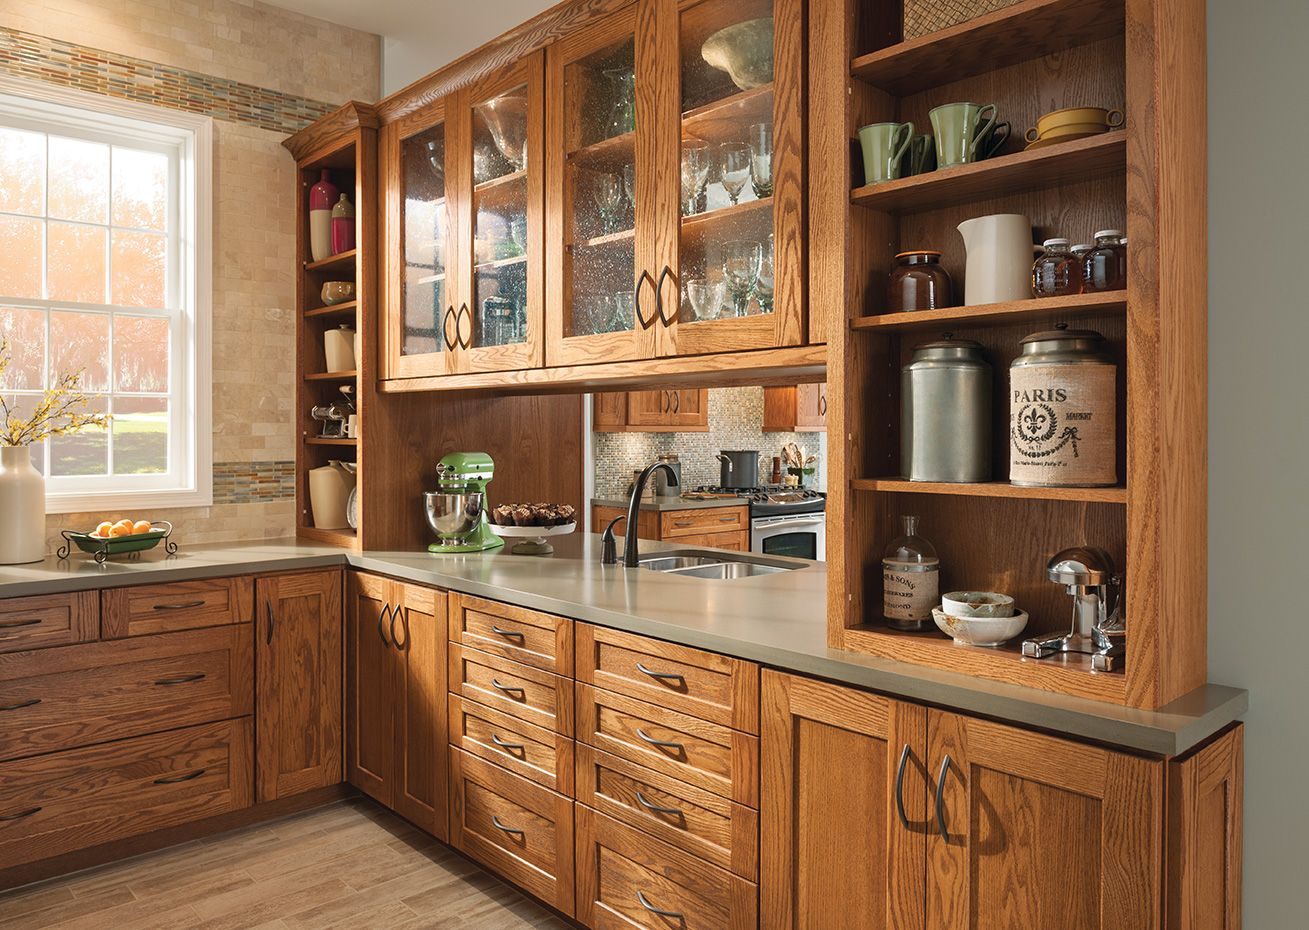 American Woodmark Cabinets Exclusively At The Home Depot Kitchen Design Traditional Kitchen Cabinets Rustic Kitchen